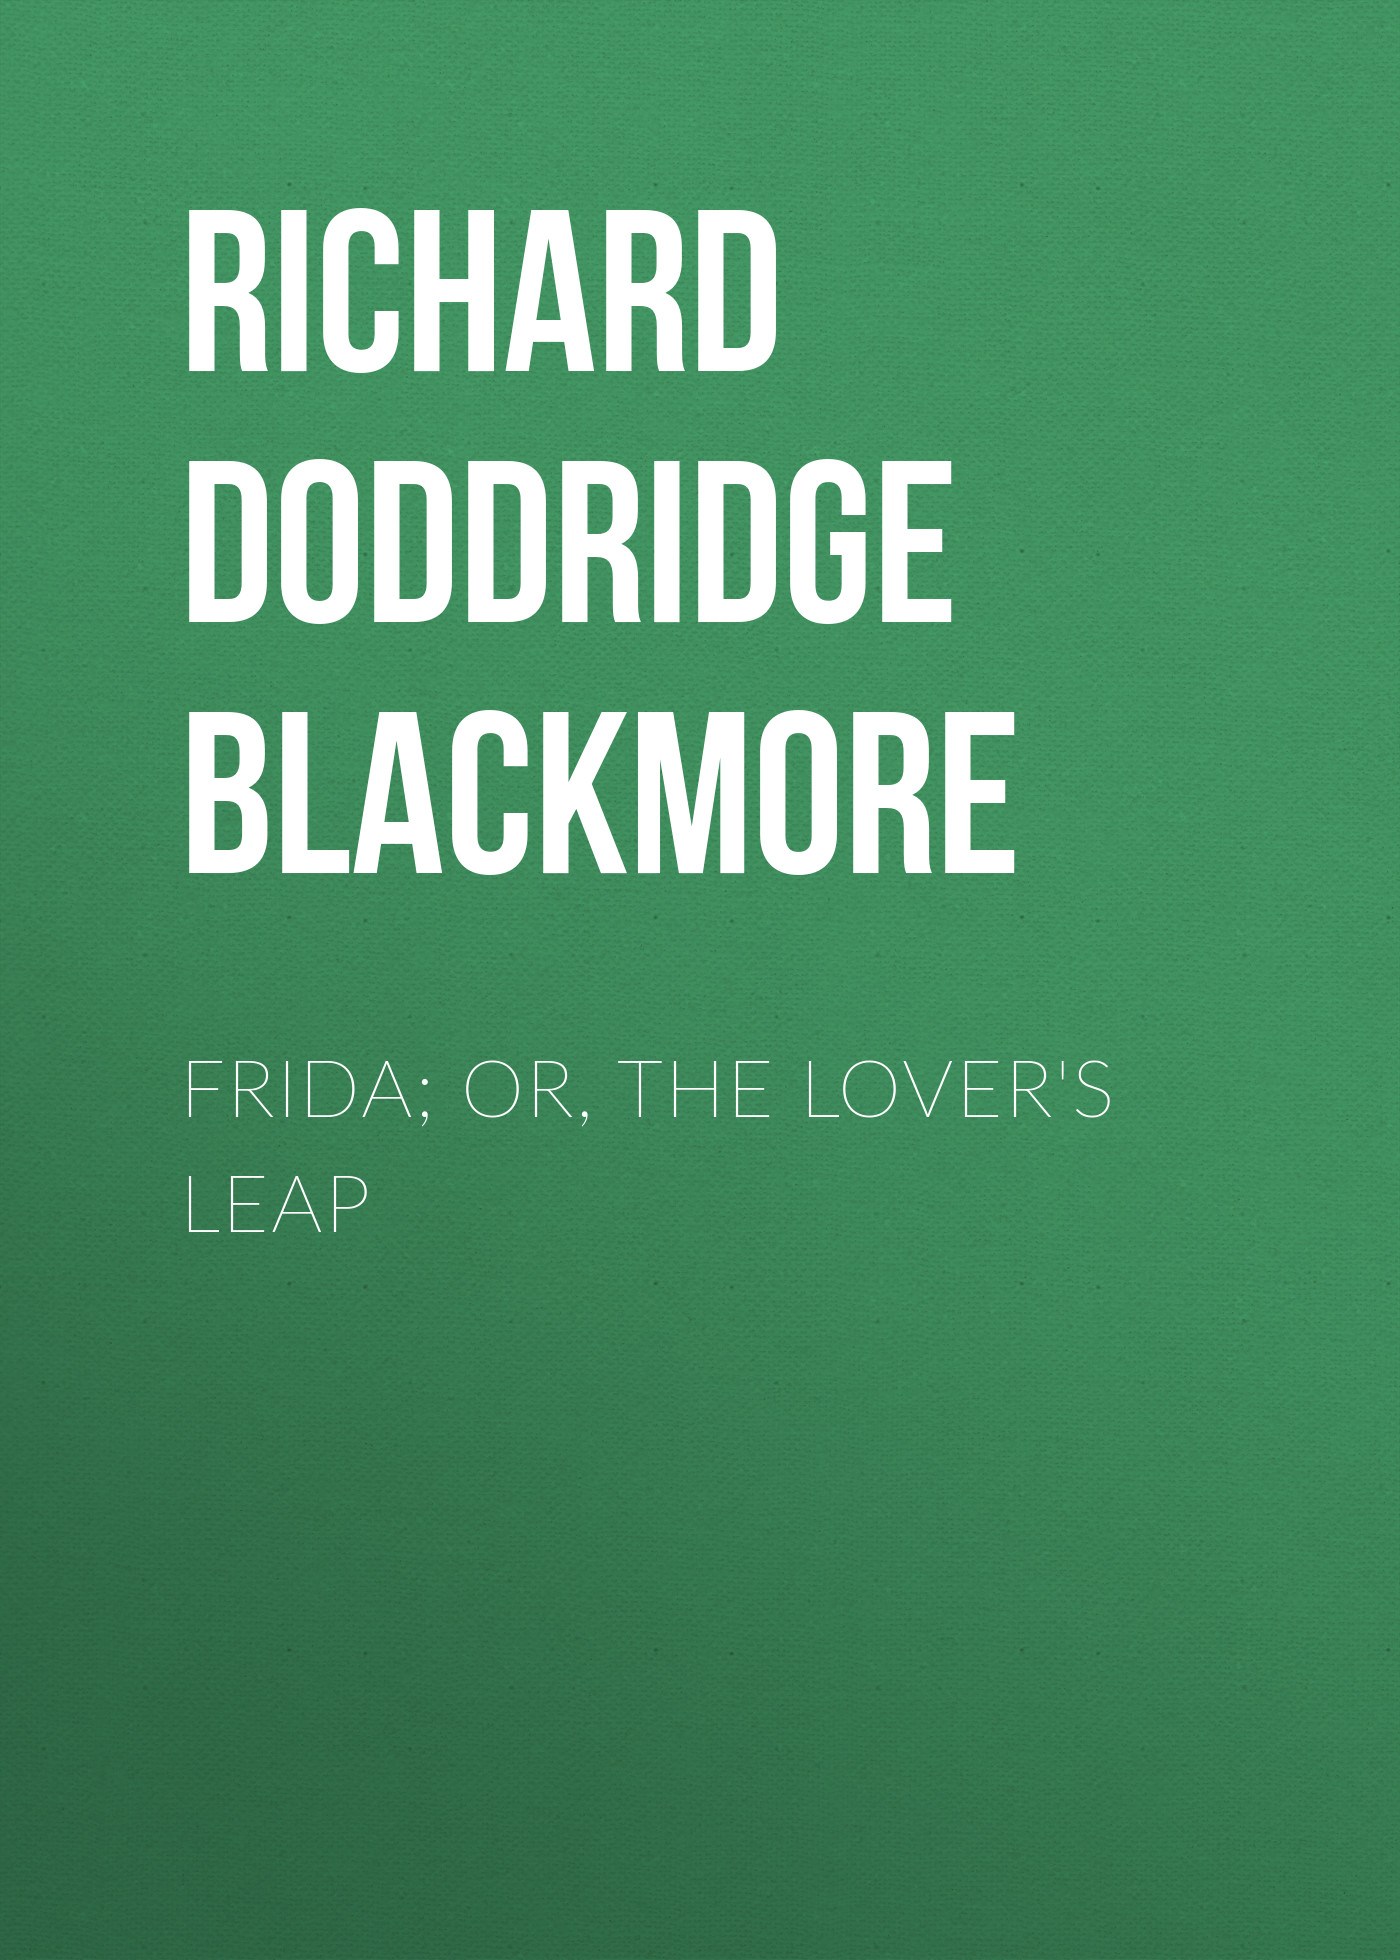 Richard Doddridge Blackmore Frida; Or, The Lover's Leap blackmore richard doddridge clara vaughan volume 1 of 3